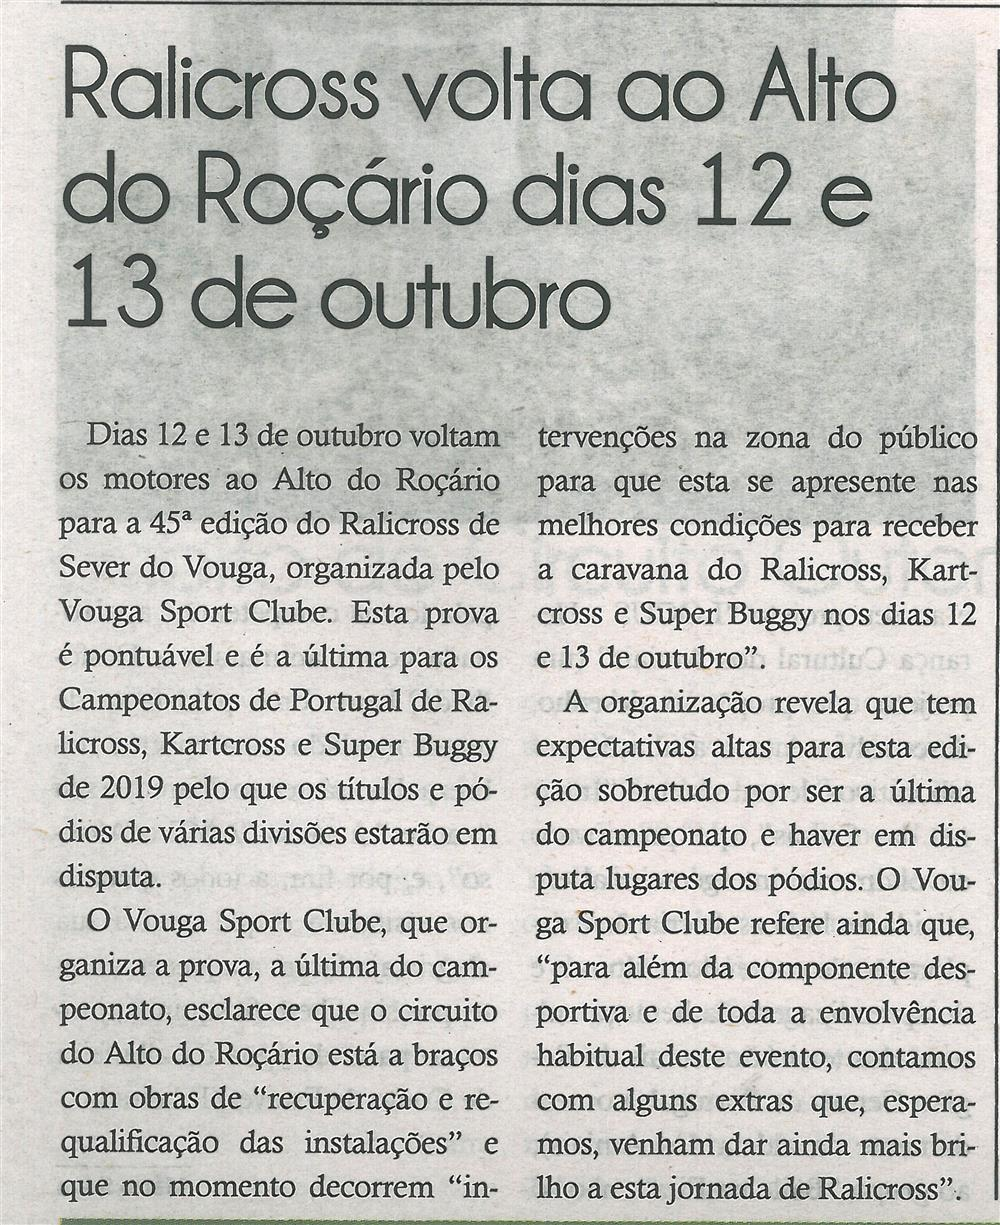 TV-out.'19-p.9-Ralicross volta ao Alto do Roçário dias 12 e 13 de outubro.jpg